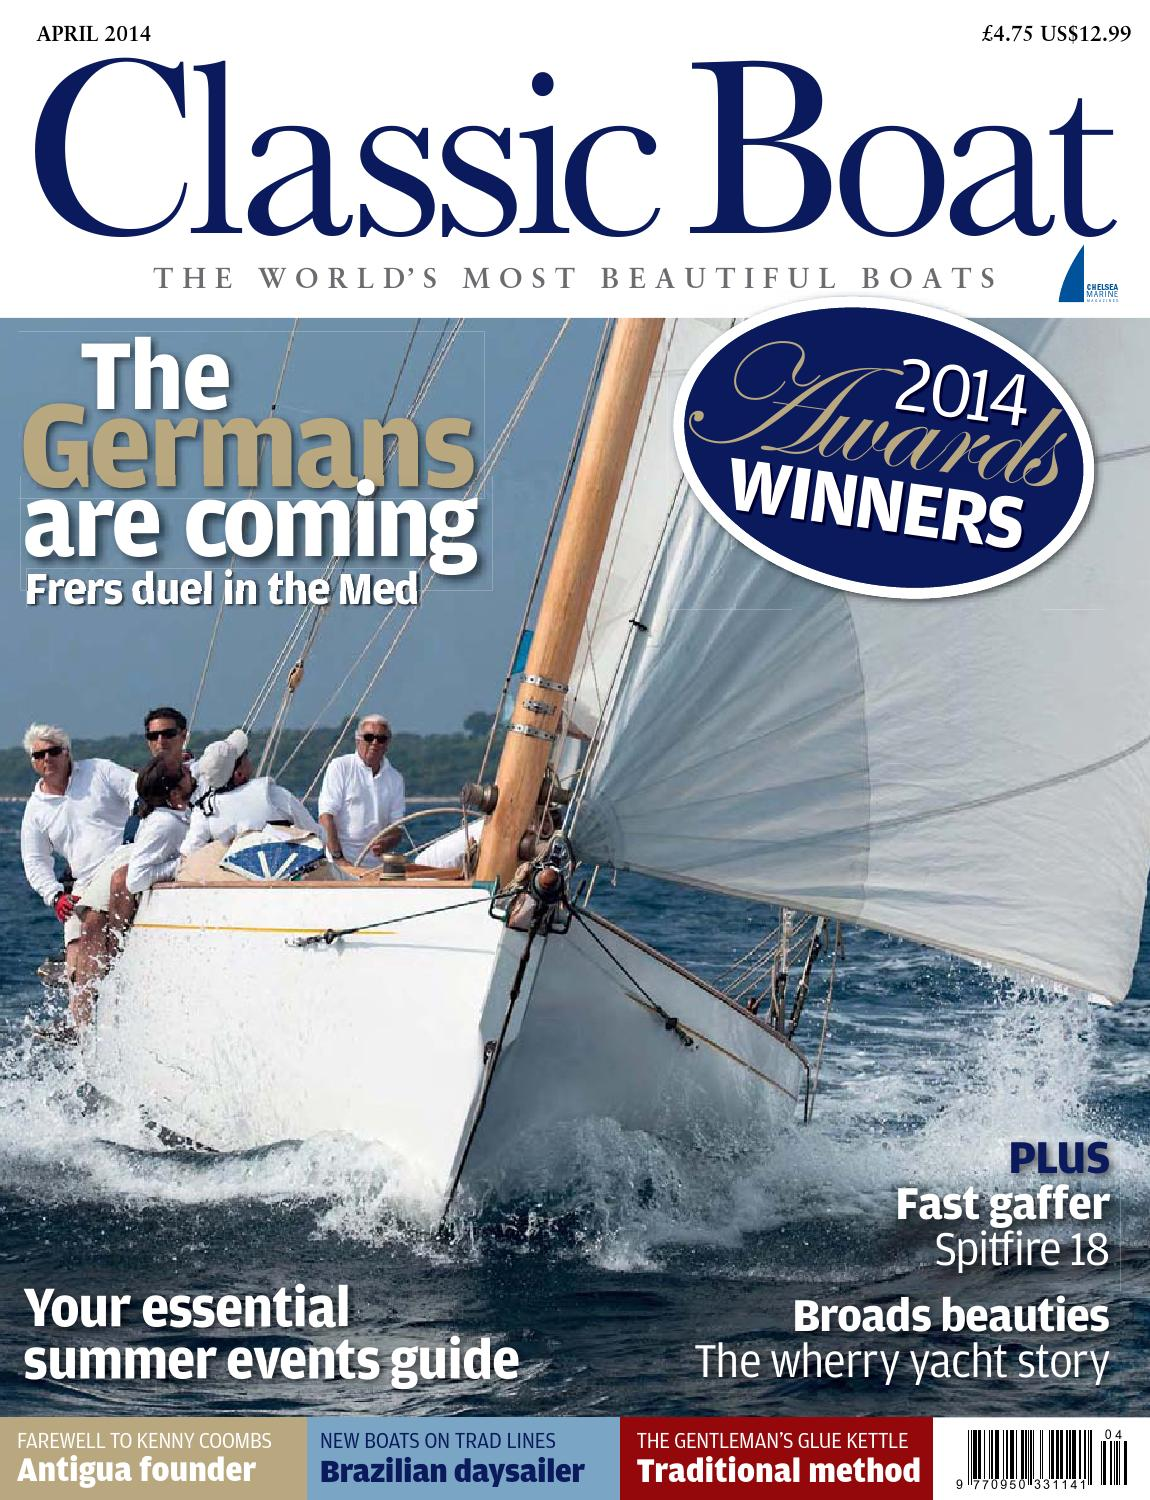 Classic Boat April 2014 By The Chelsea Magazine Company Issuu To Builders And Recreational Boats Typical Wiring Diagram